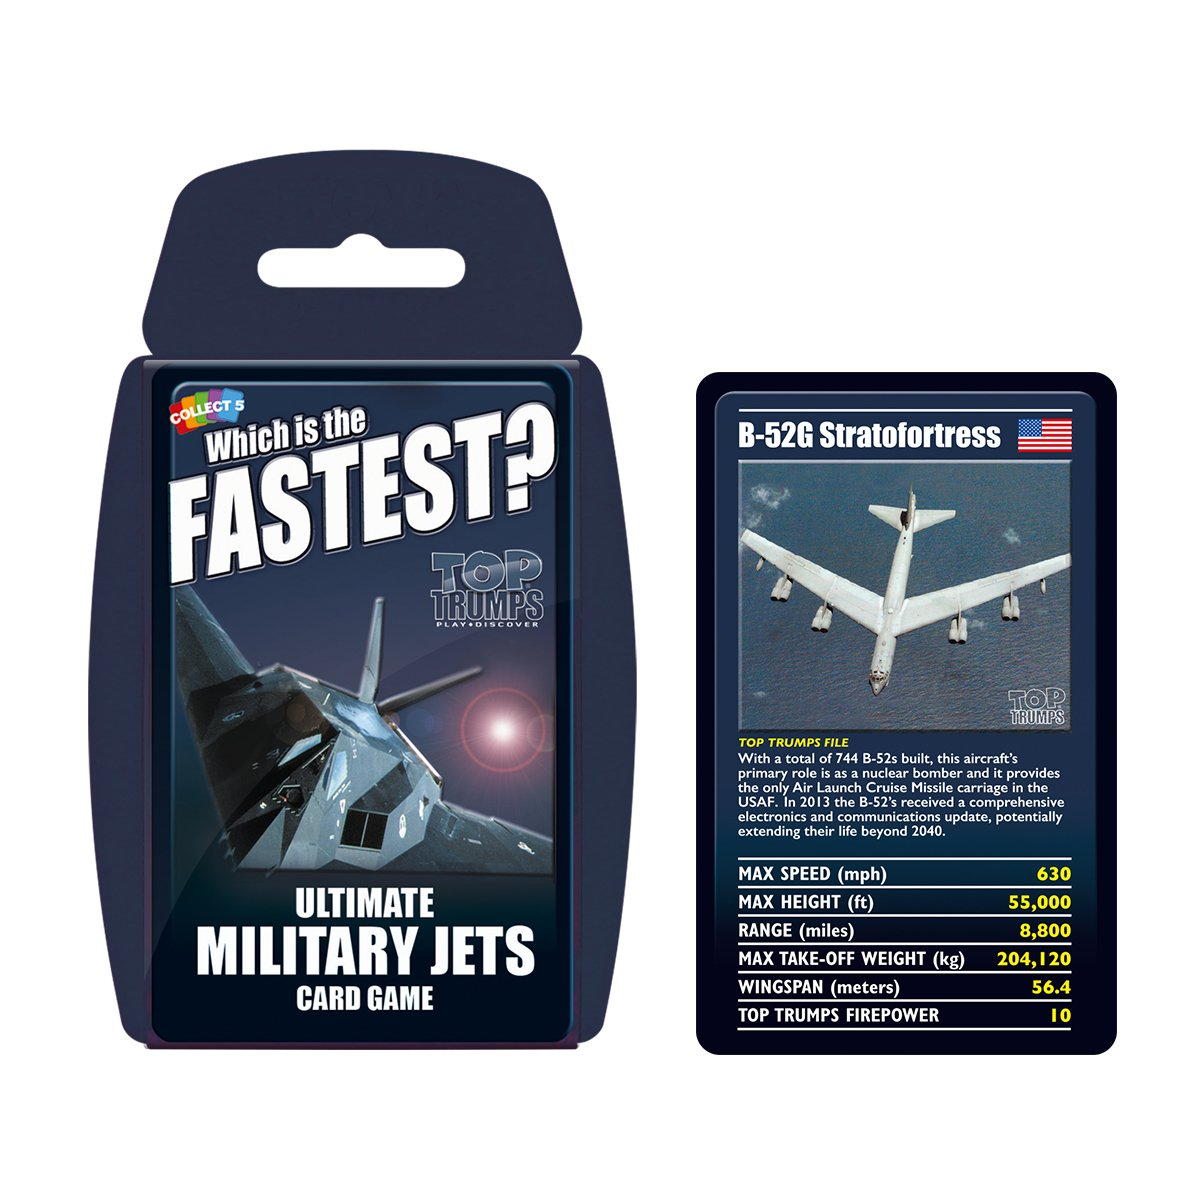 Top Trumps Rules >> Ultimate Military Jets Top Trumps Card Game